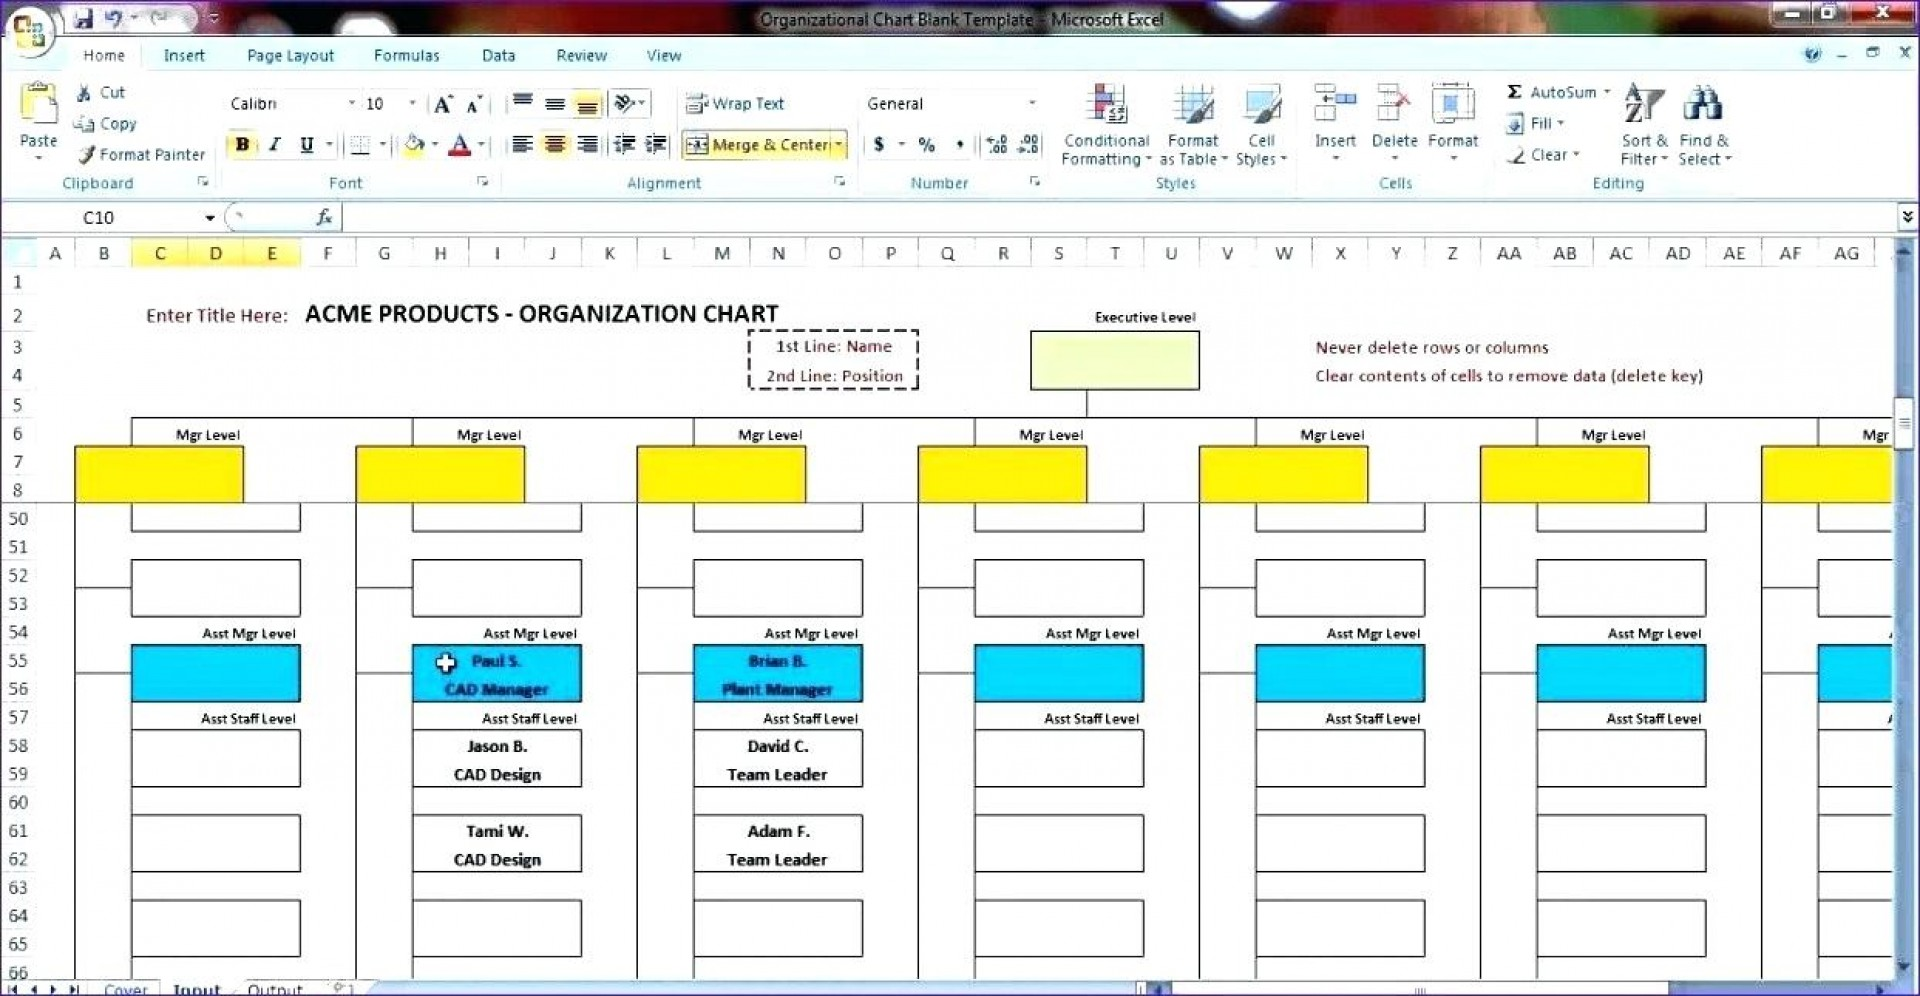 Best Organizational Chart Template